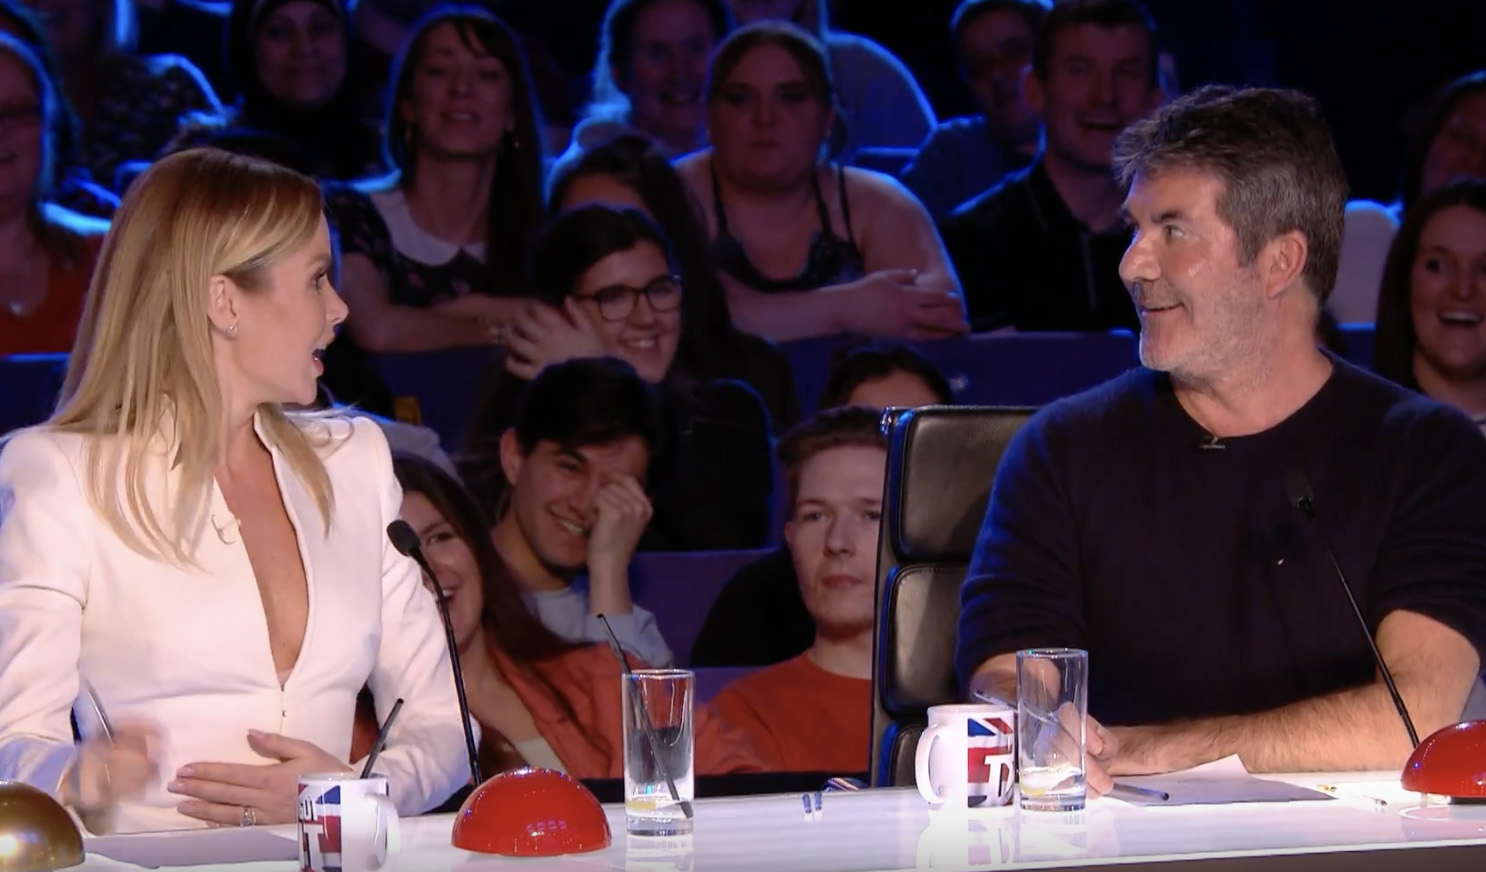 Britain's Got Talent Amanda Holden, Simon Cowell